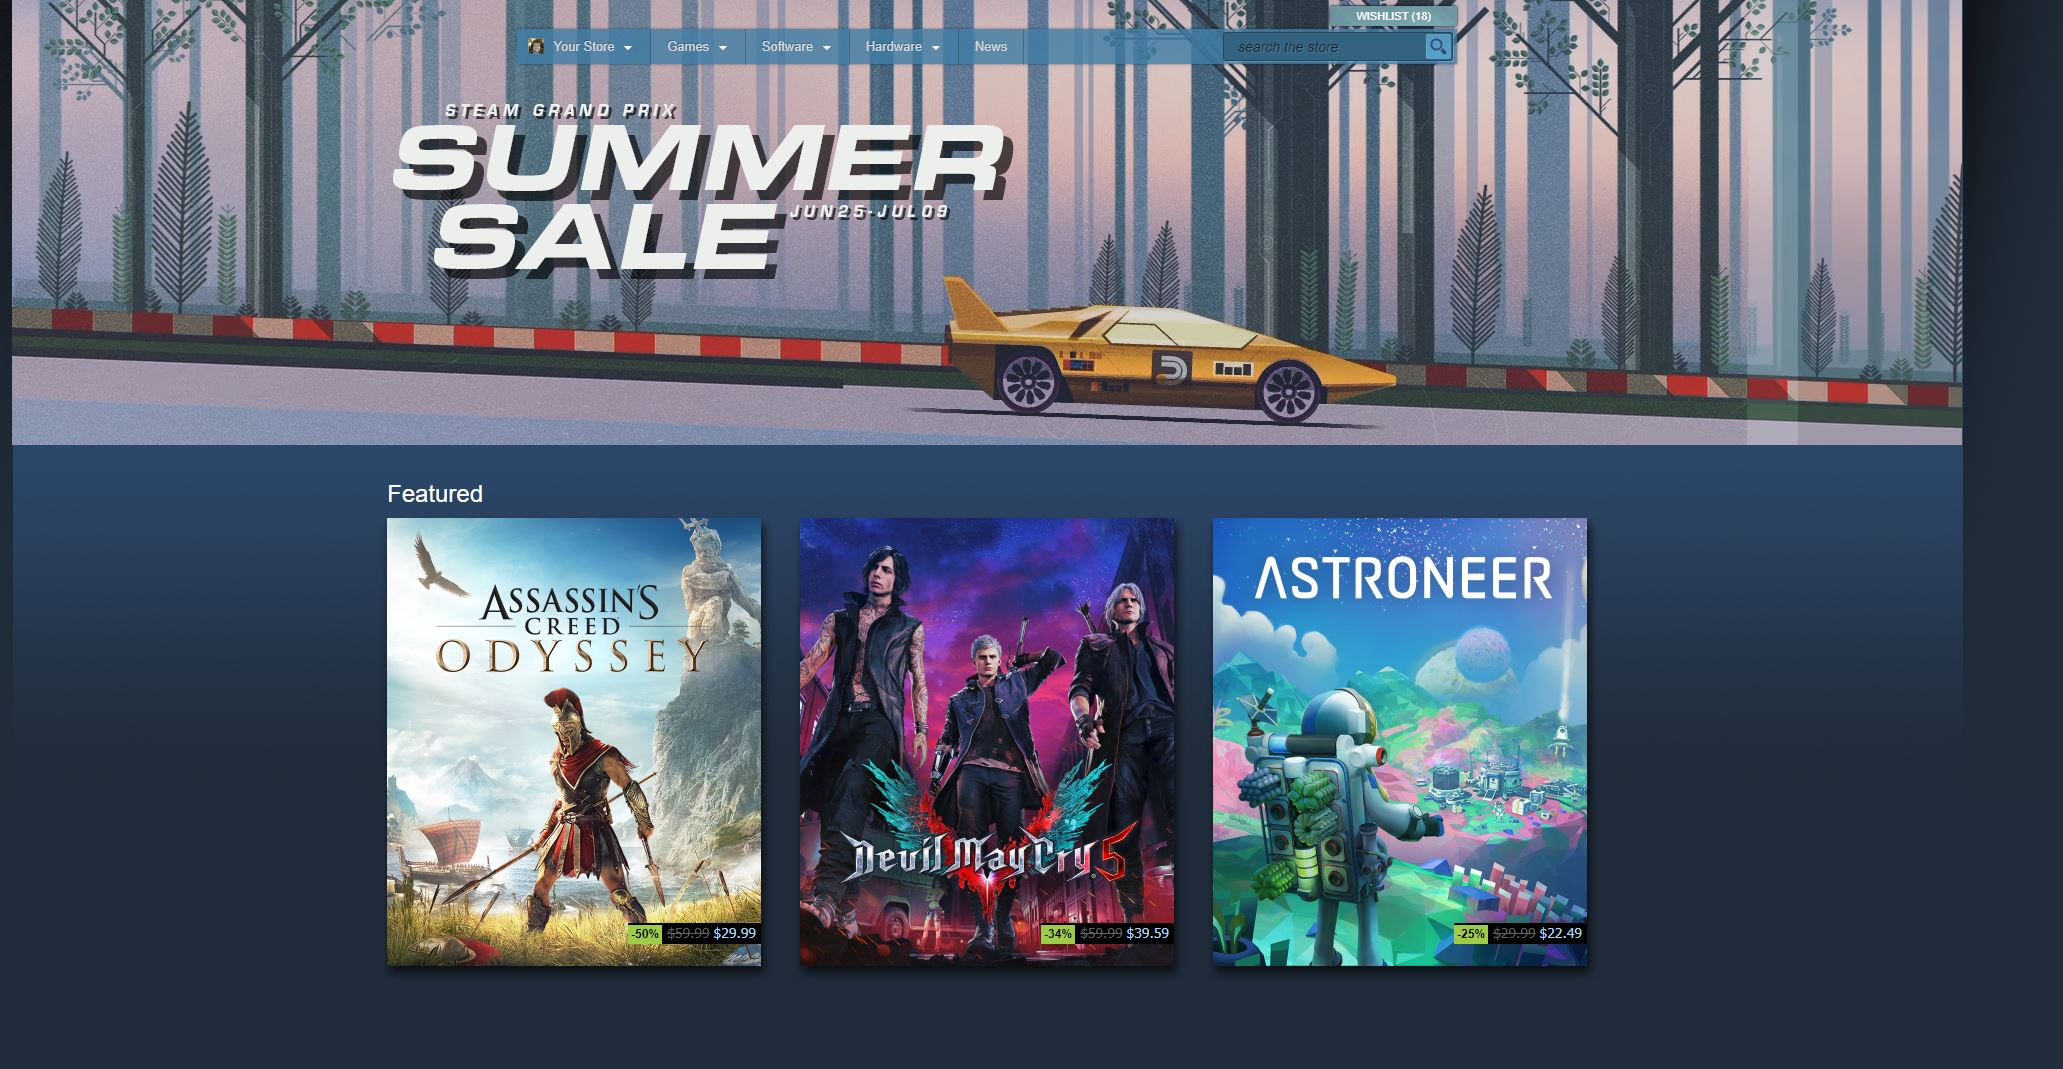 steam summer sale uploadvr 2019 image